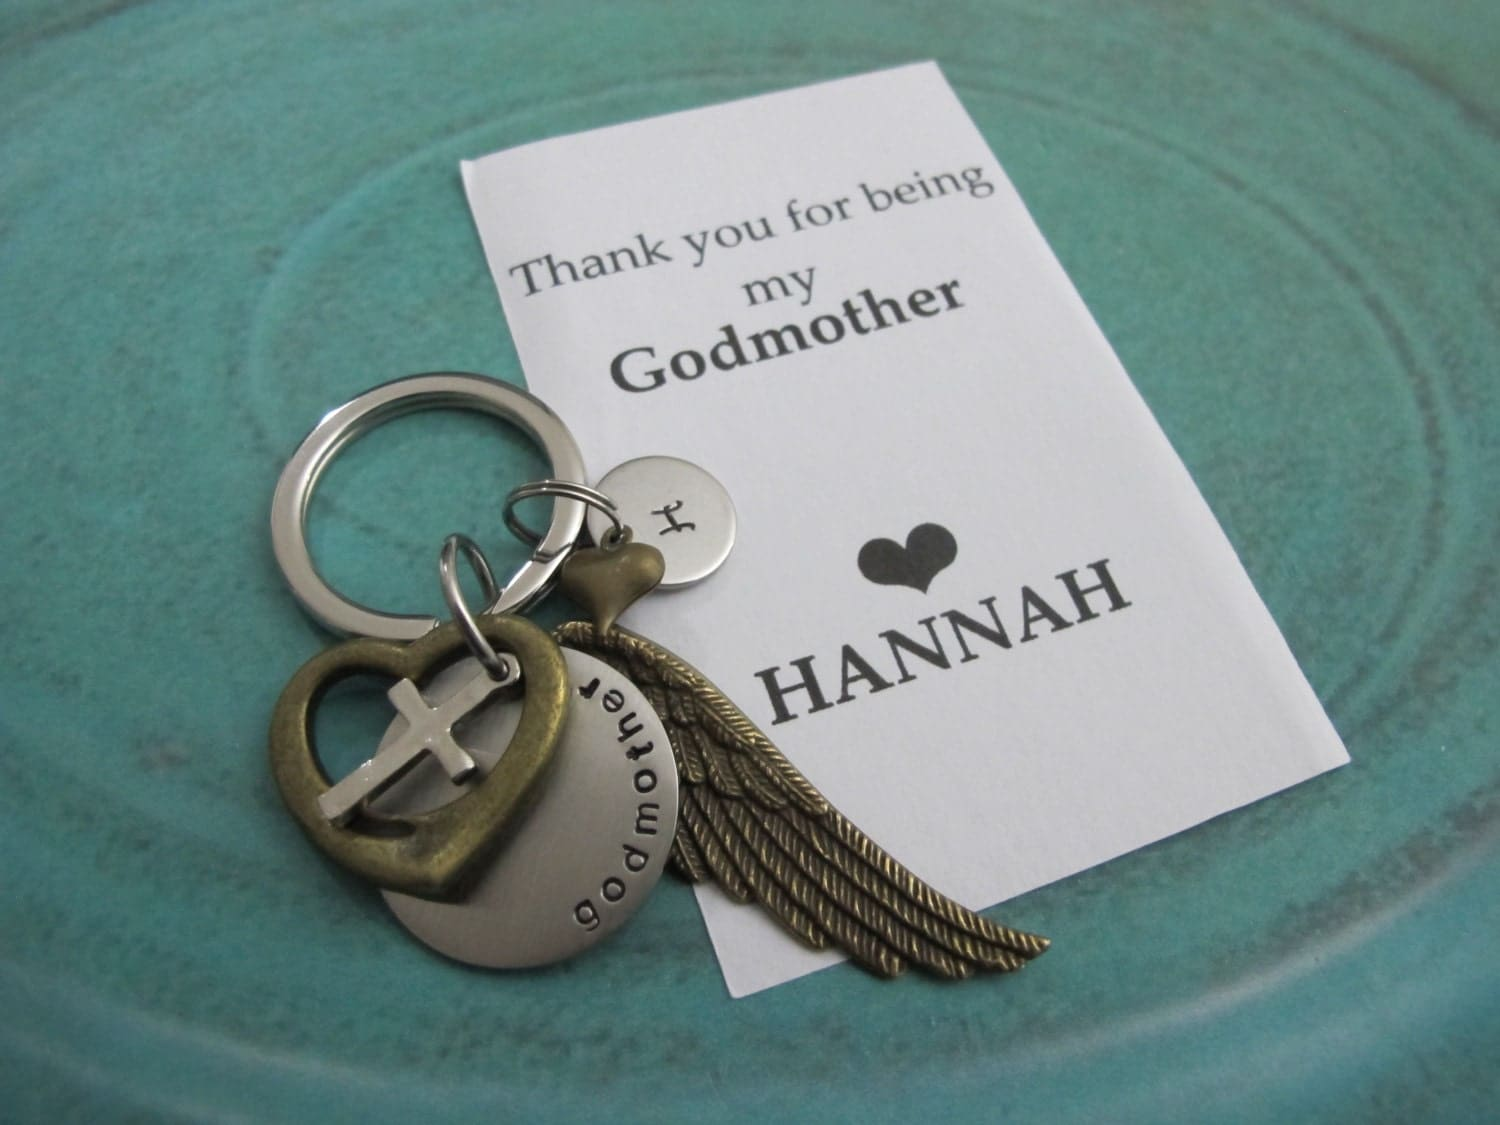 Godparent Keychain Gift For Godparents Gift For: Godmother Gift Personalized Initial Keychain Godparent